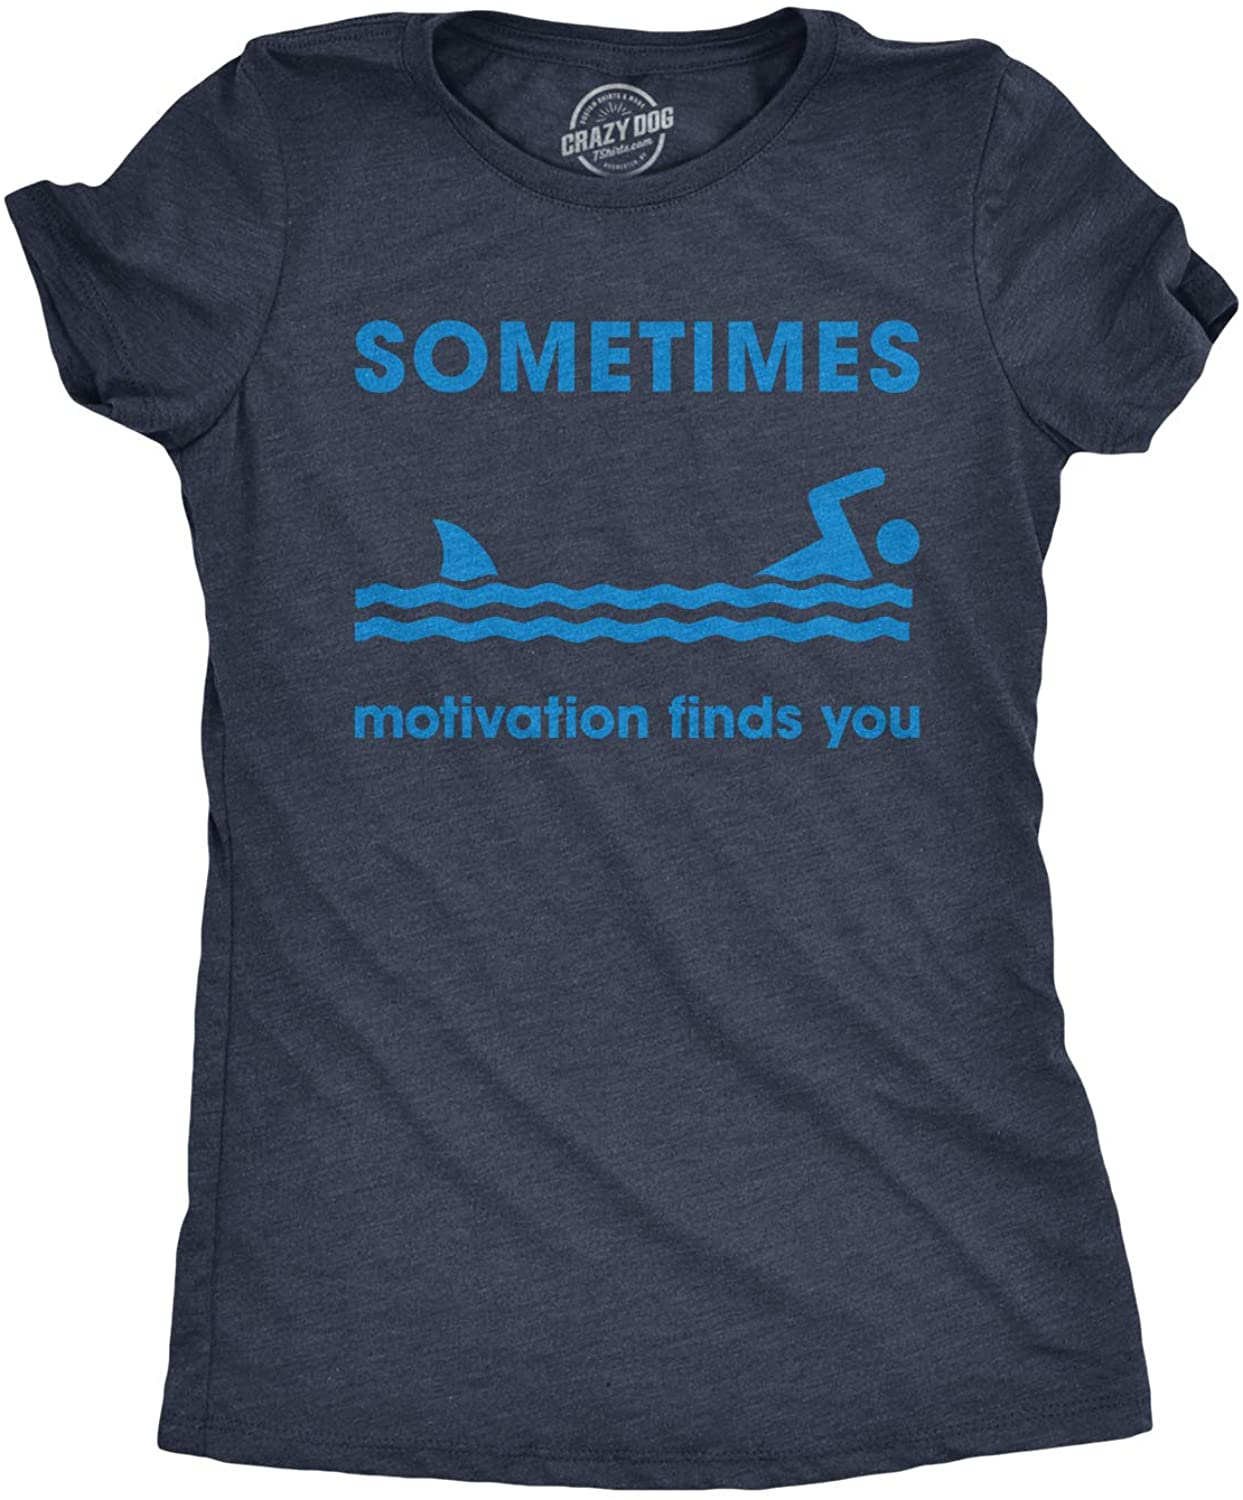 Womens Sometimes Motivation Finds You Tshirt Funny Shark Tee